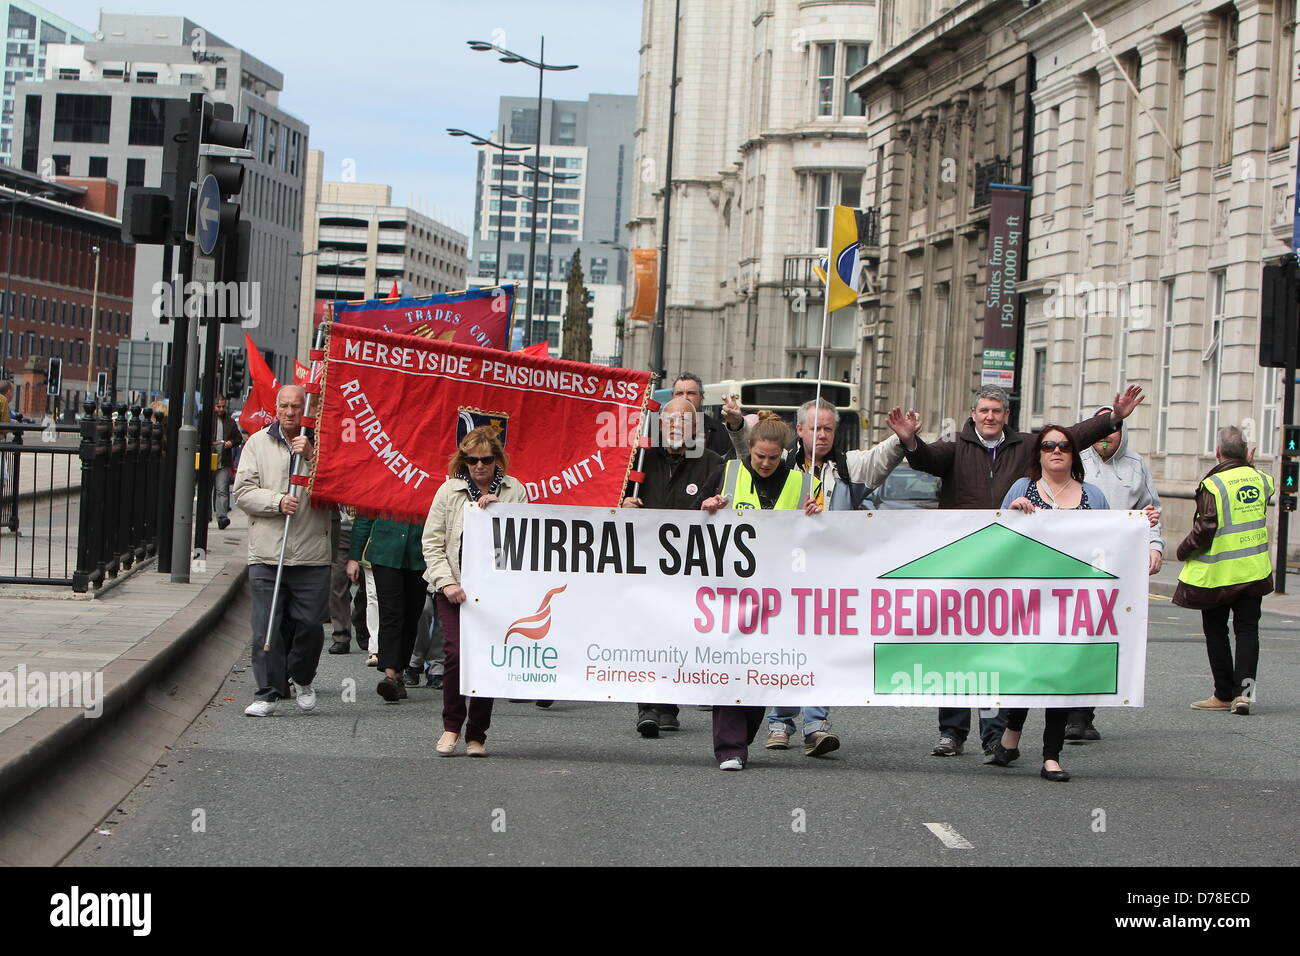 A union organised march through Liverpool city centre against government cuts on May 1, 2013. - Stock Image